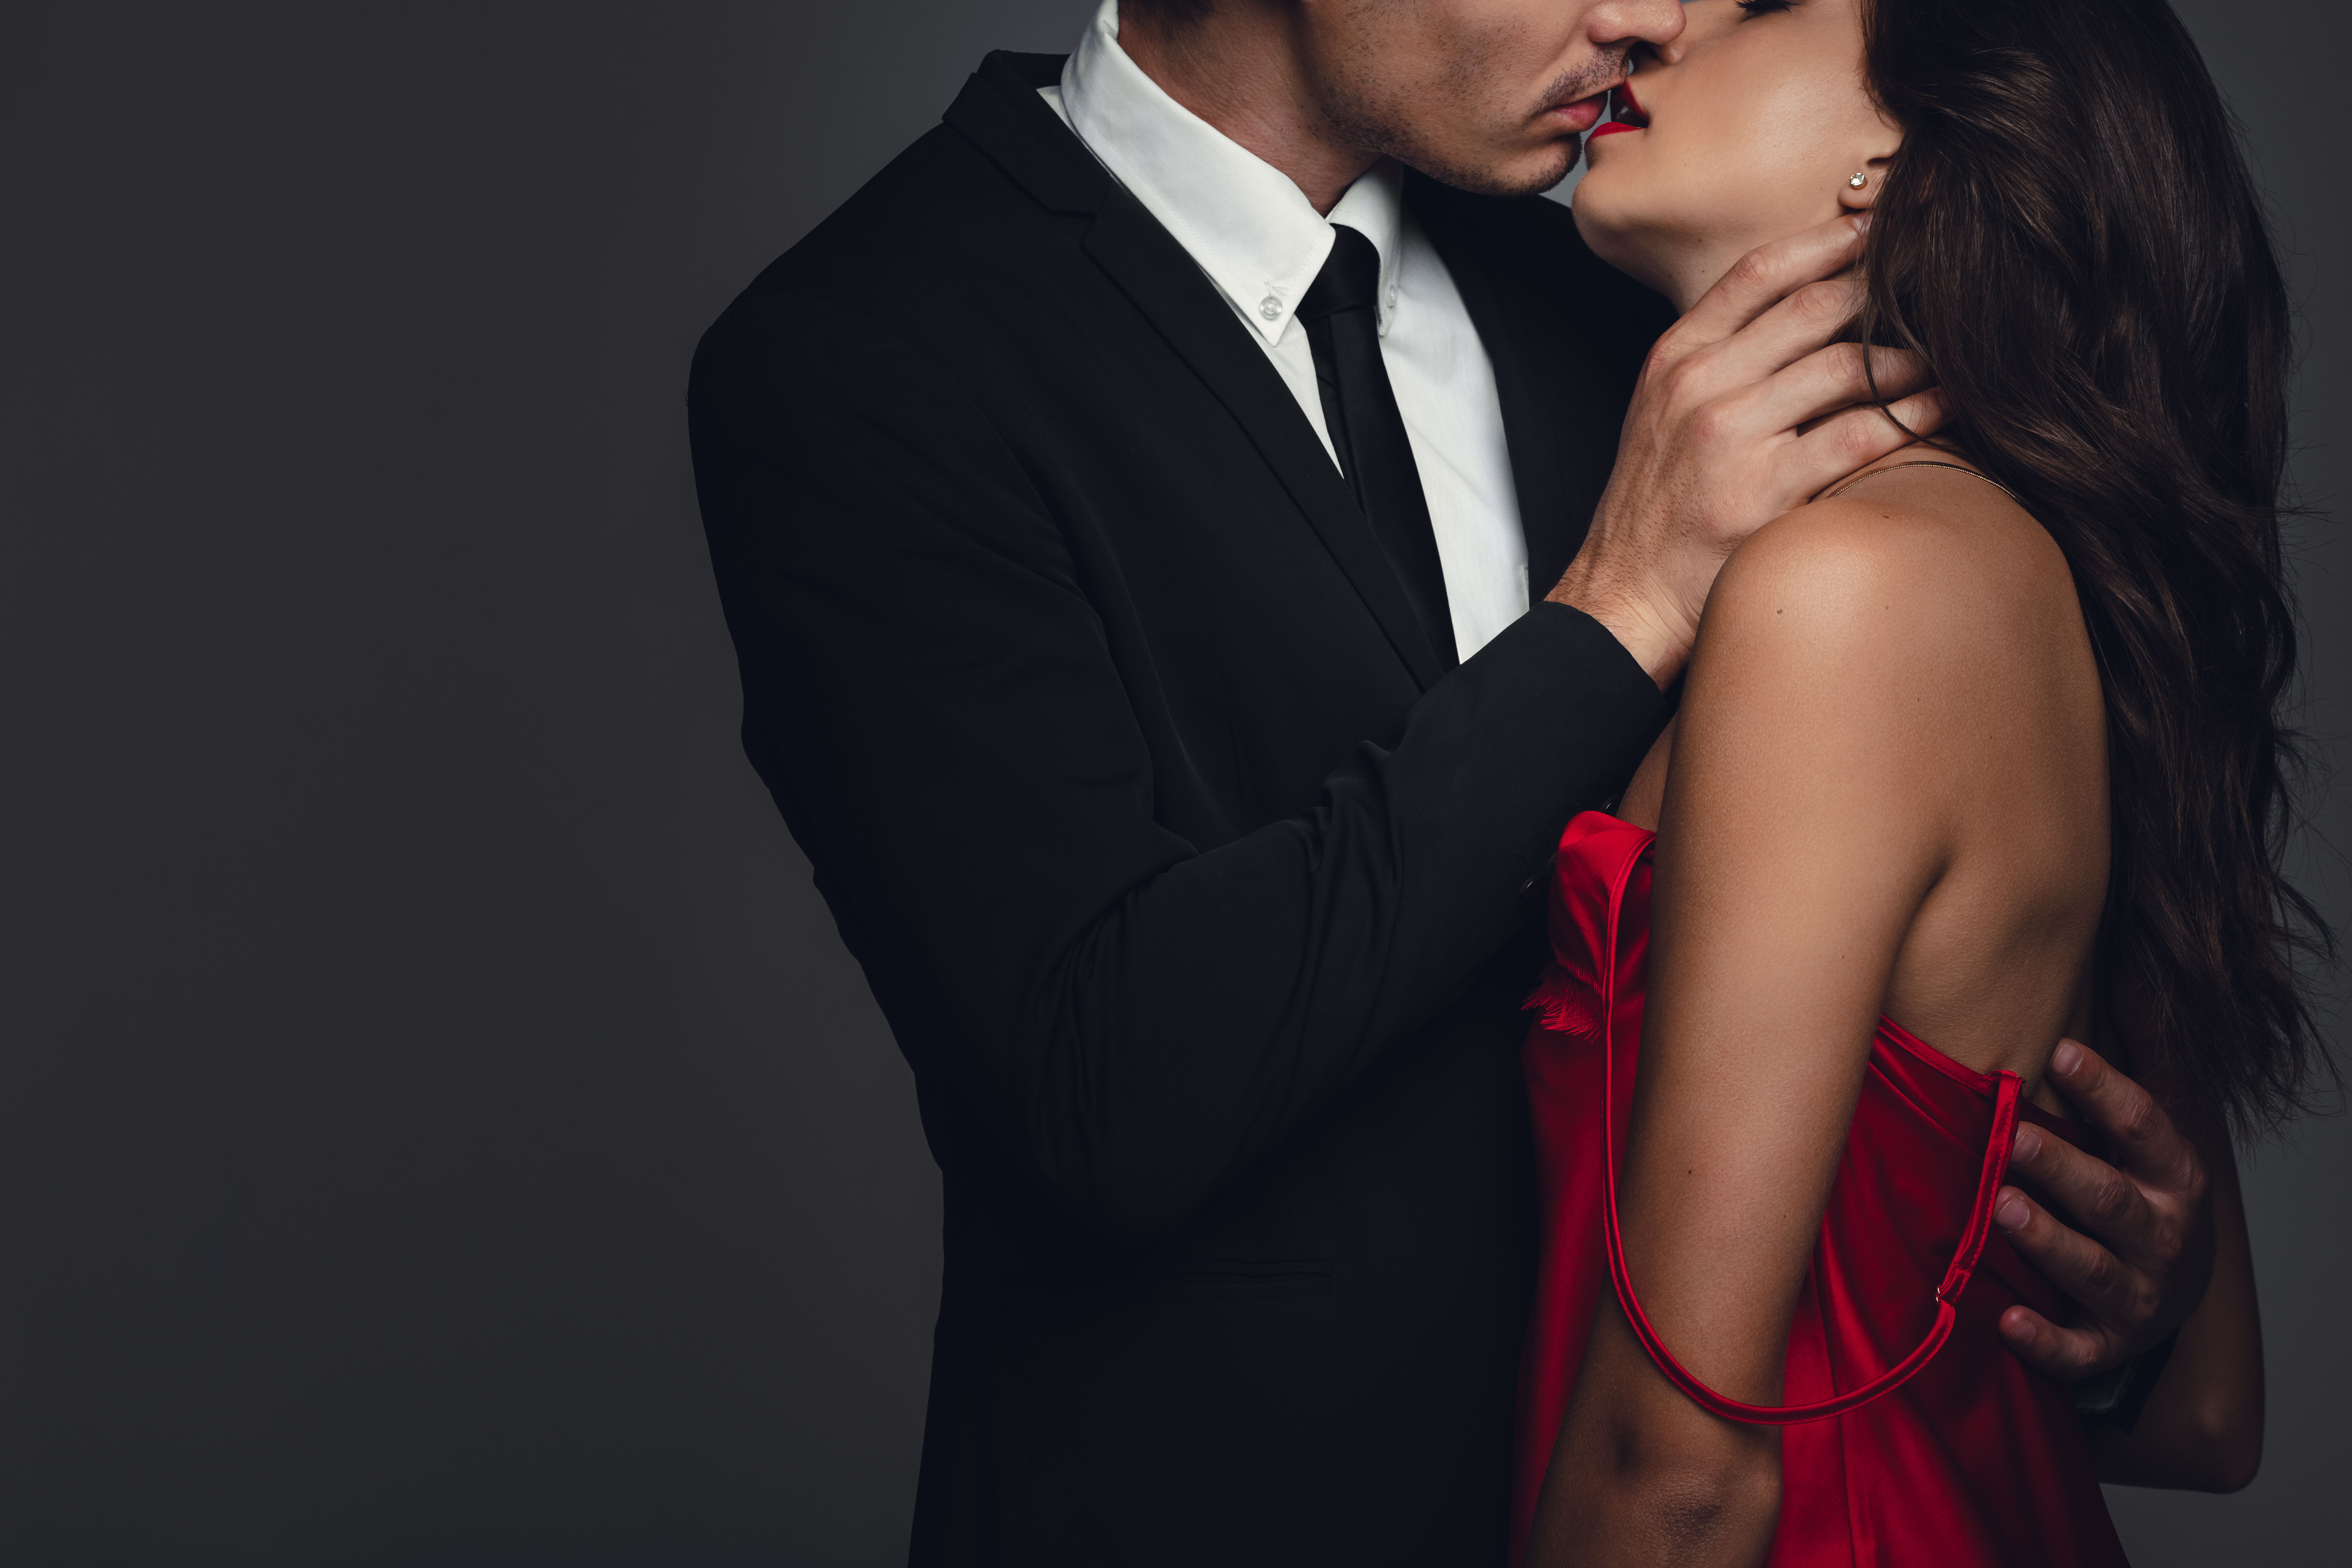 Formally dressed couple kissing.